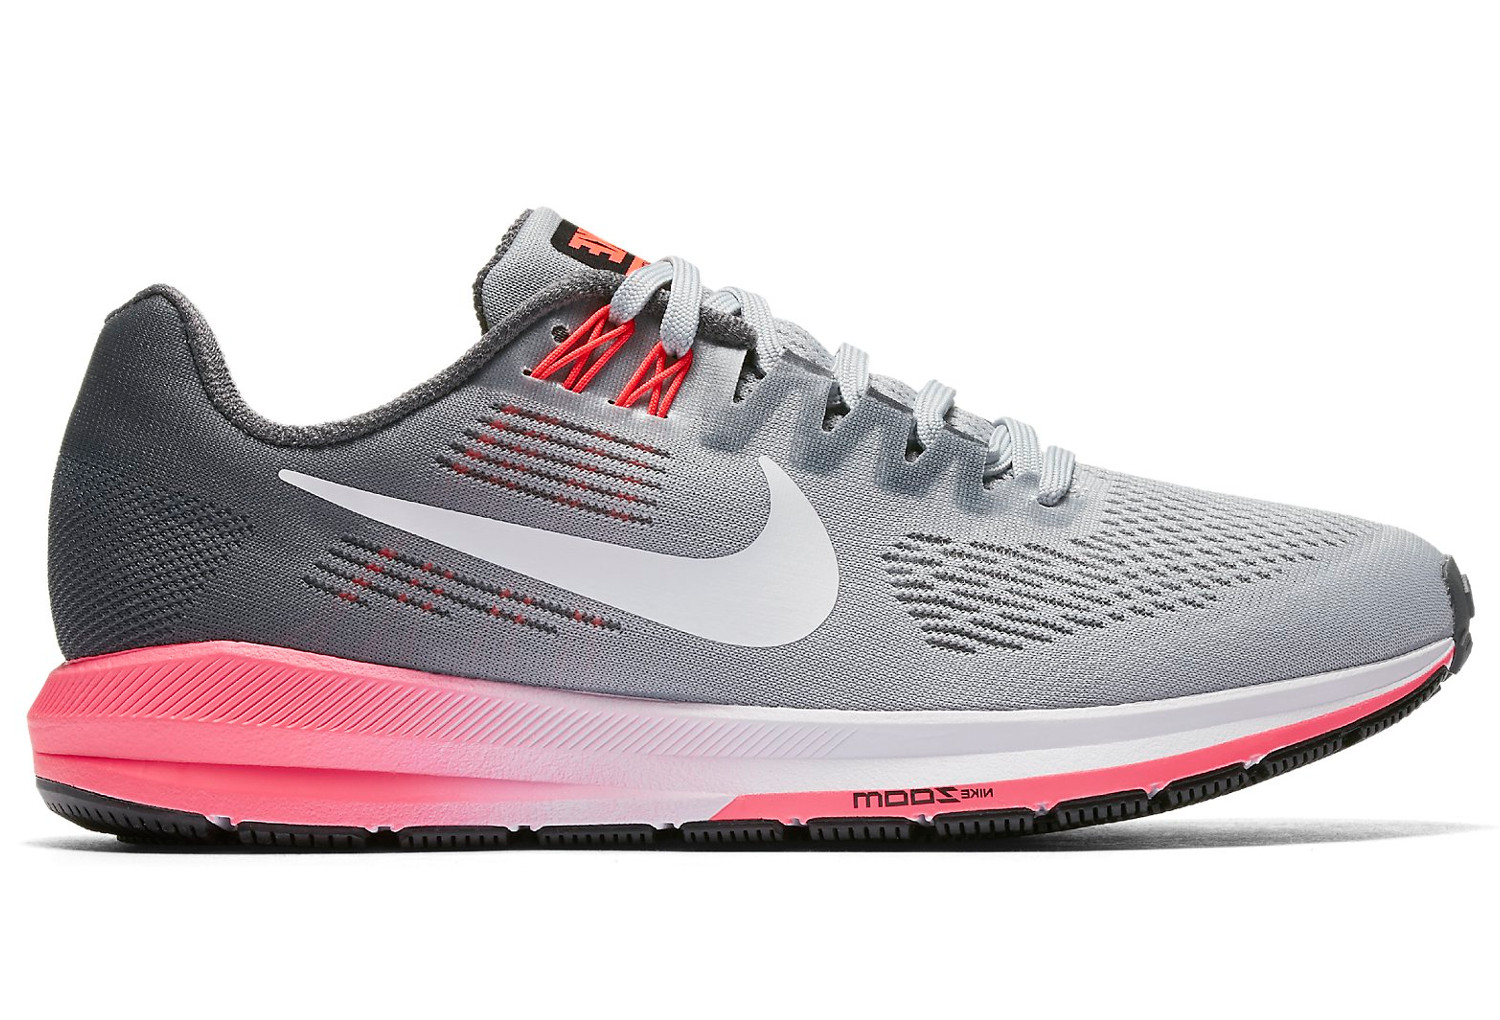 Chaussures de Running Femme Nike Air Zoom Structure 21 Gris ... 299832ed852